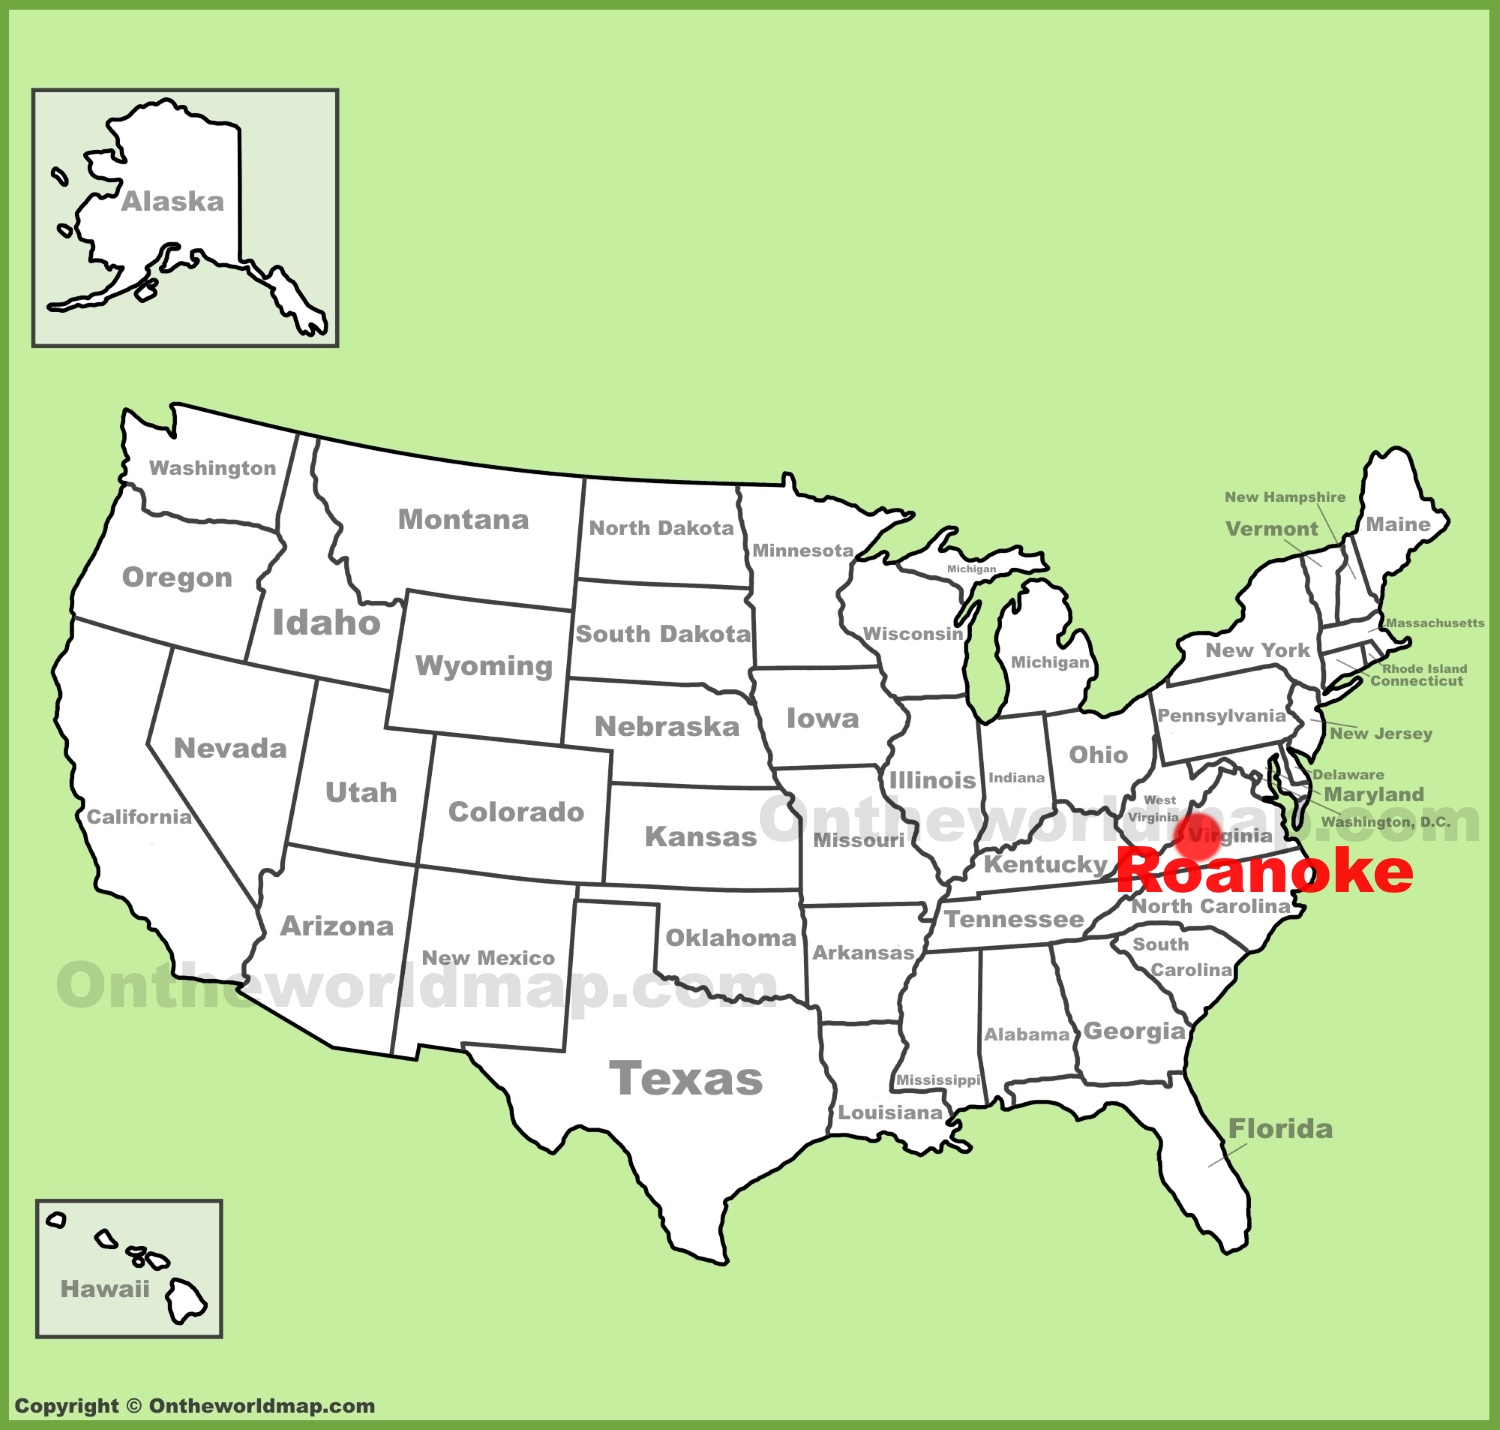 Roanoke location on the US Map